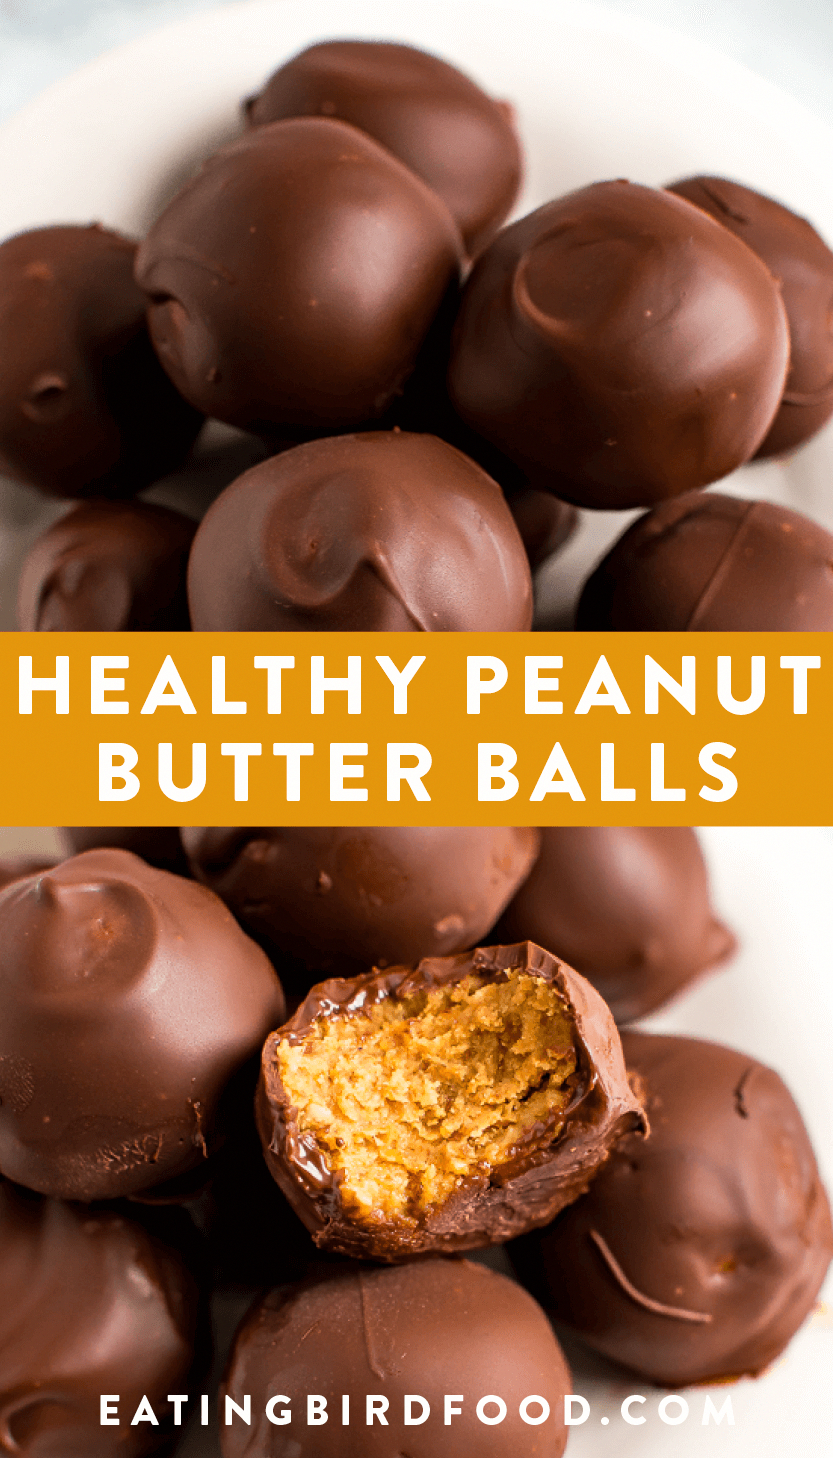 Make healthy peanut butter balls with only 5 simple ingredients: peanut butter, oats, dates, chocolate and coconut oil! No powdered sugar or butter needed. These peanut butter balls are dairy-free, gluten-free and vegan!